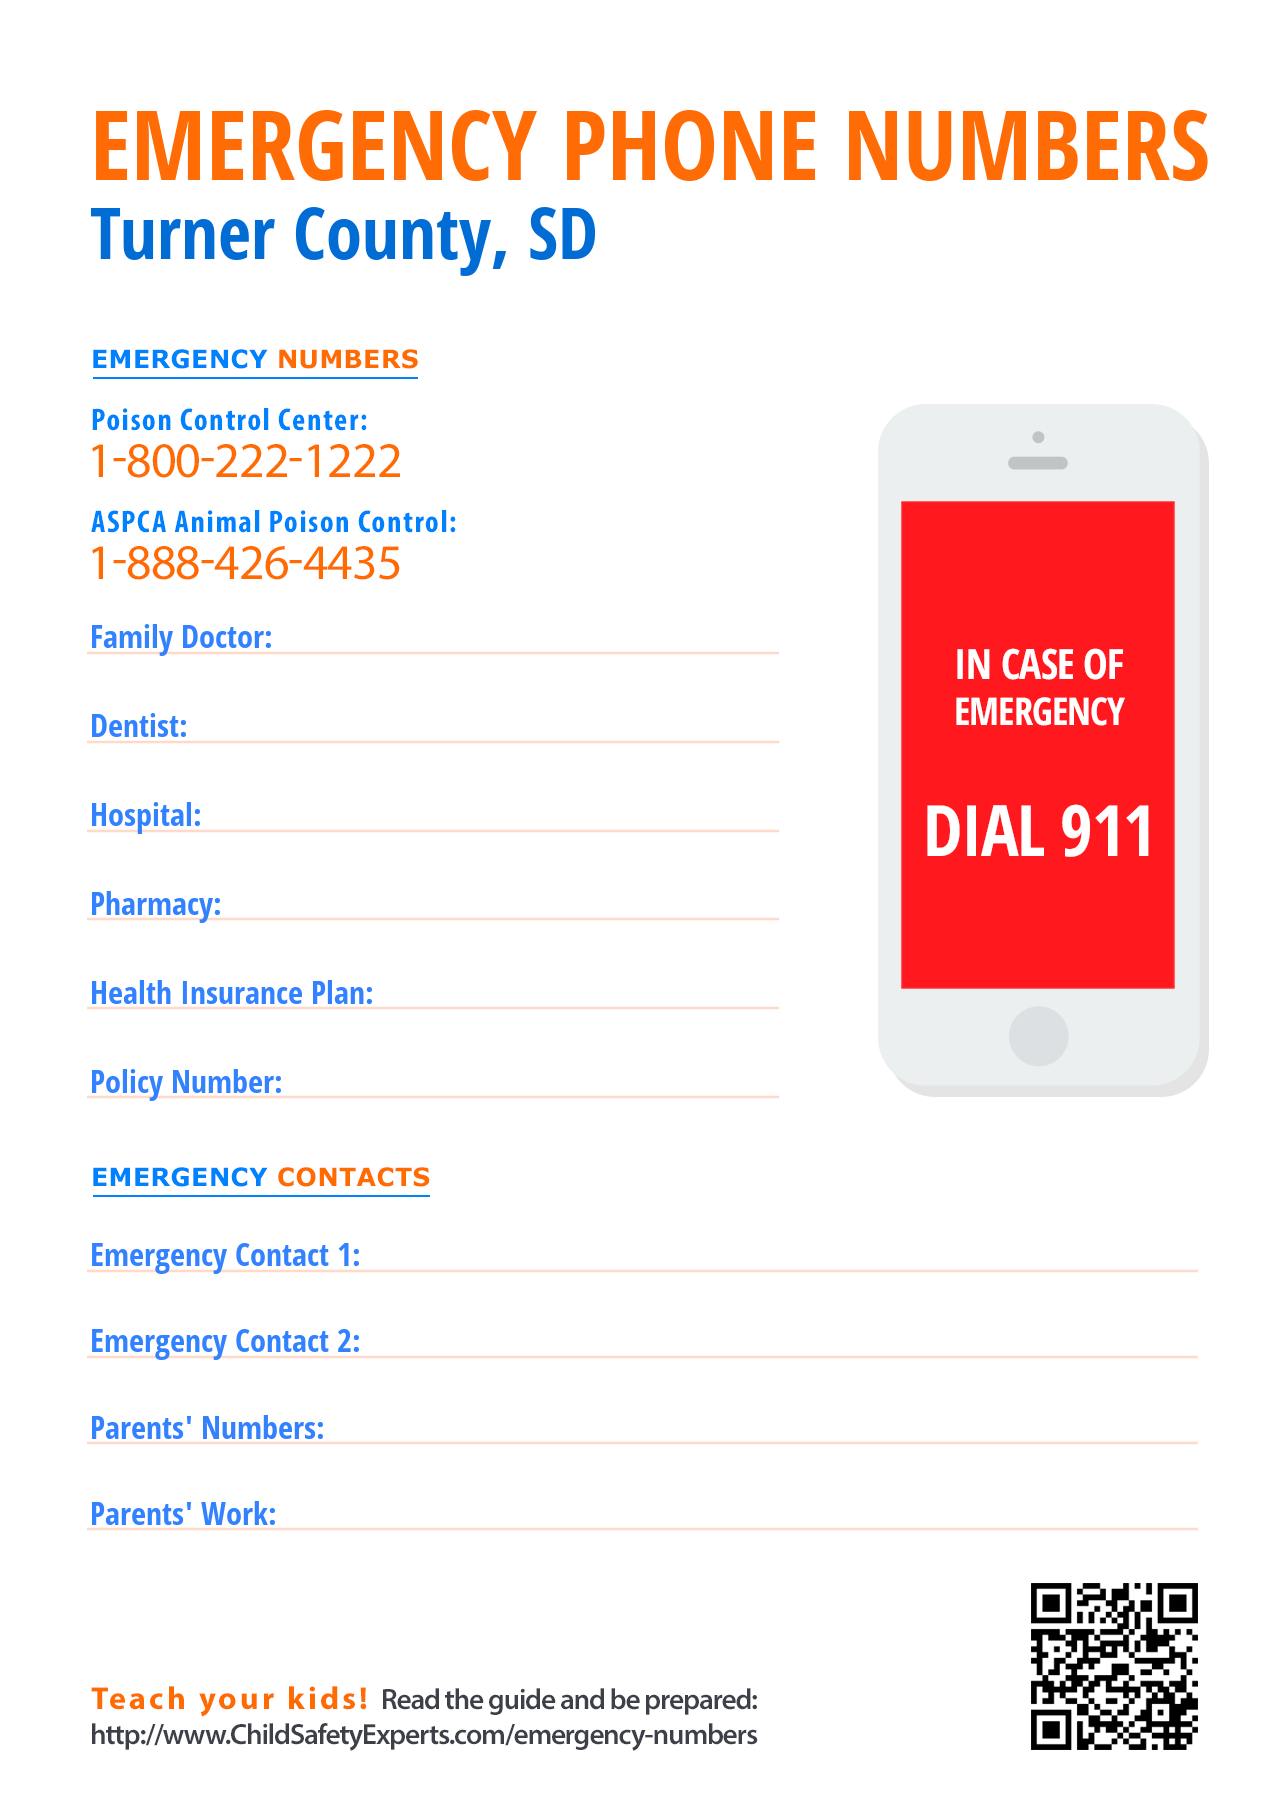 Important emergency phone numbers in Turner County, South Dakota